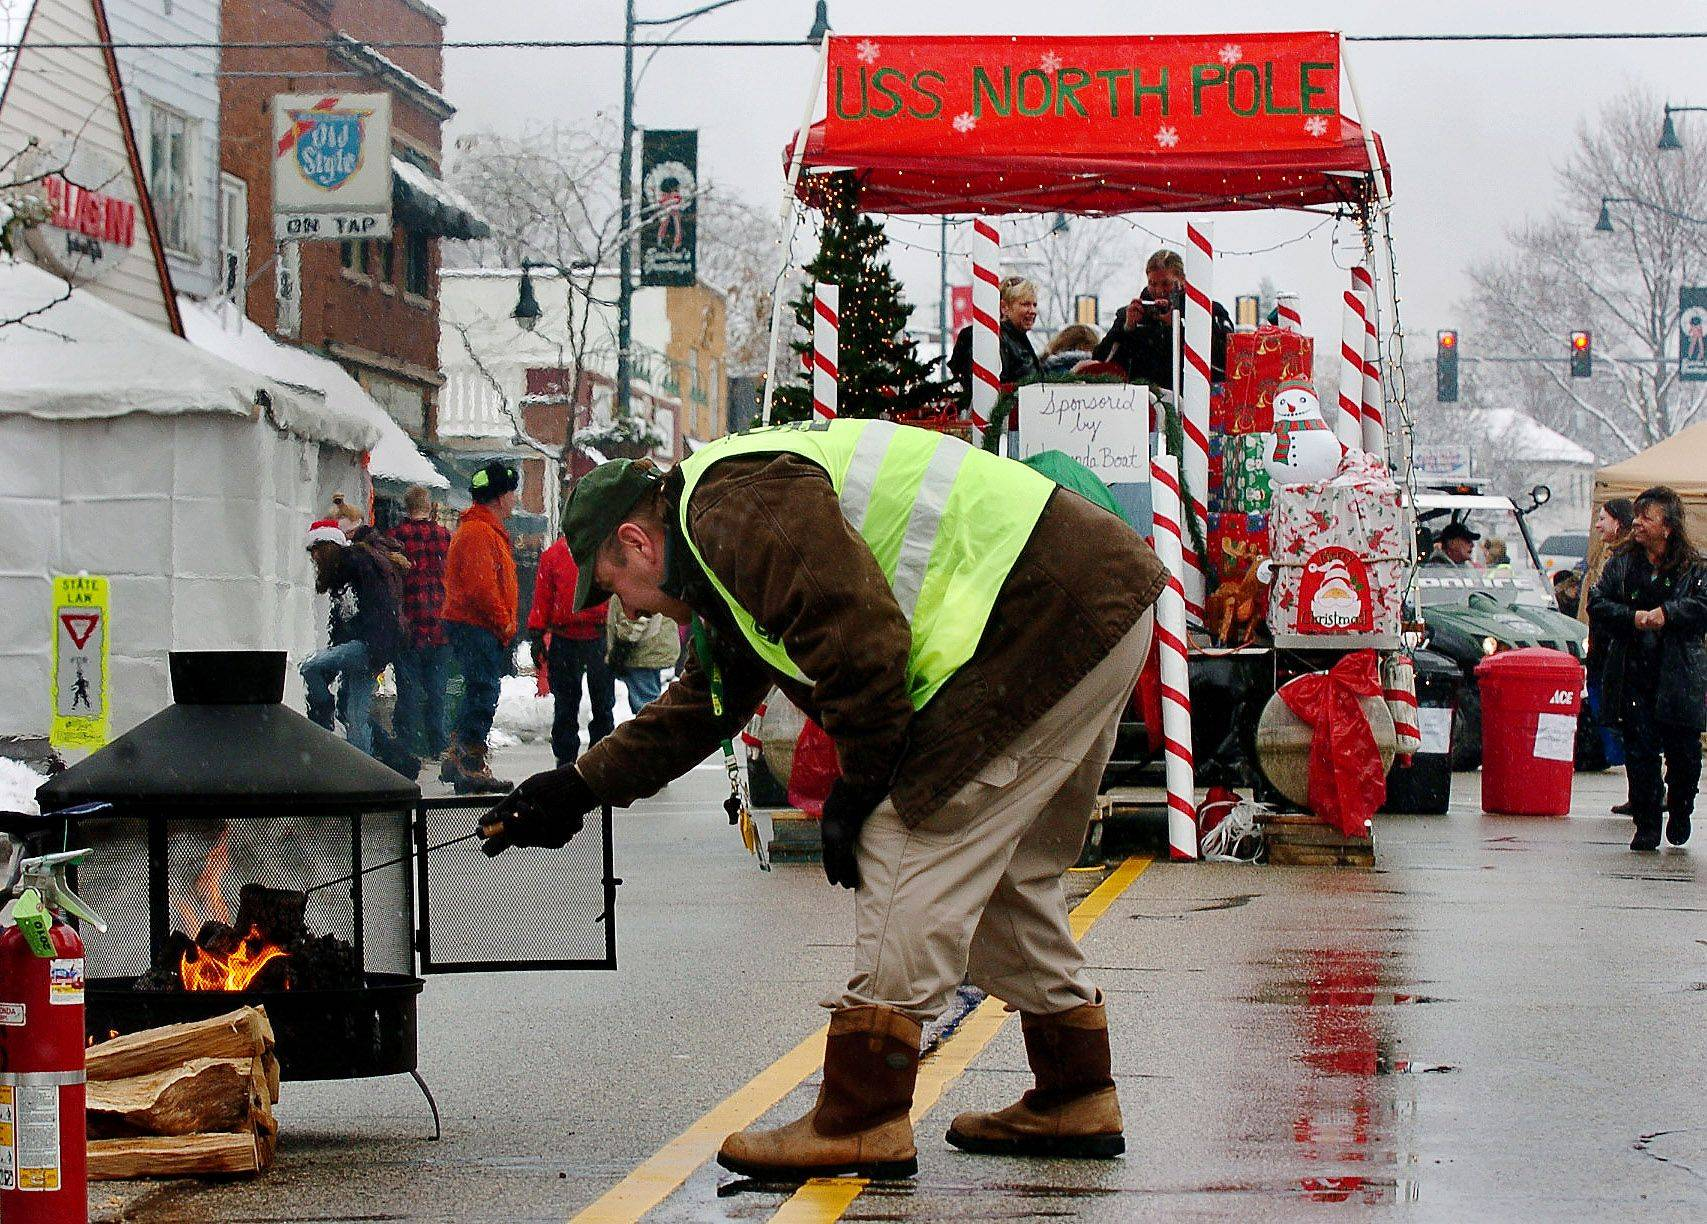 Lee Zimmerman of the Community Emergency Response Team stokes the flames of a fire pit during the Holiday Walk on Main Street in downtown Wauconda celebrating the Christmas season.